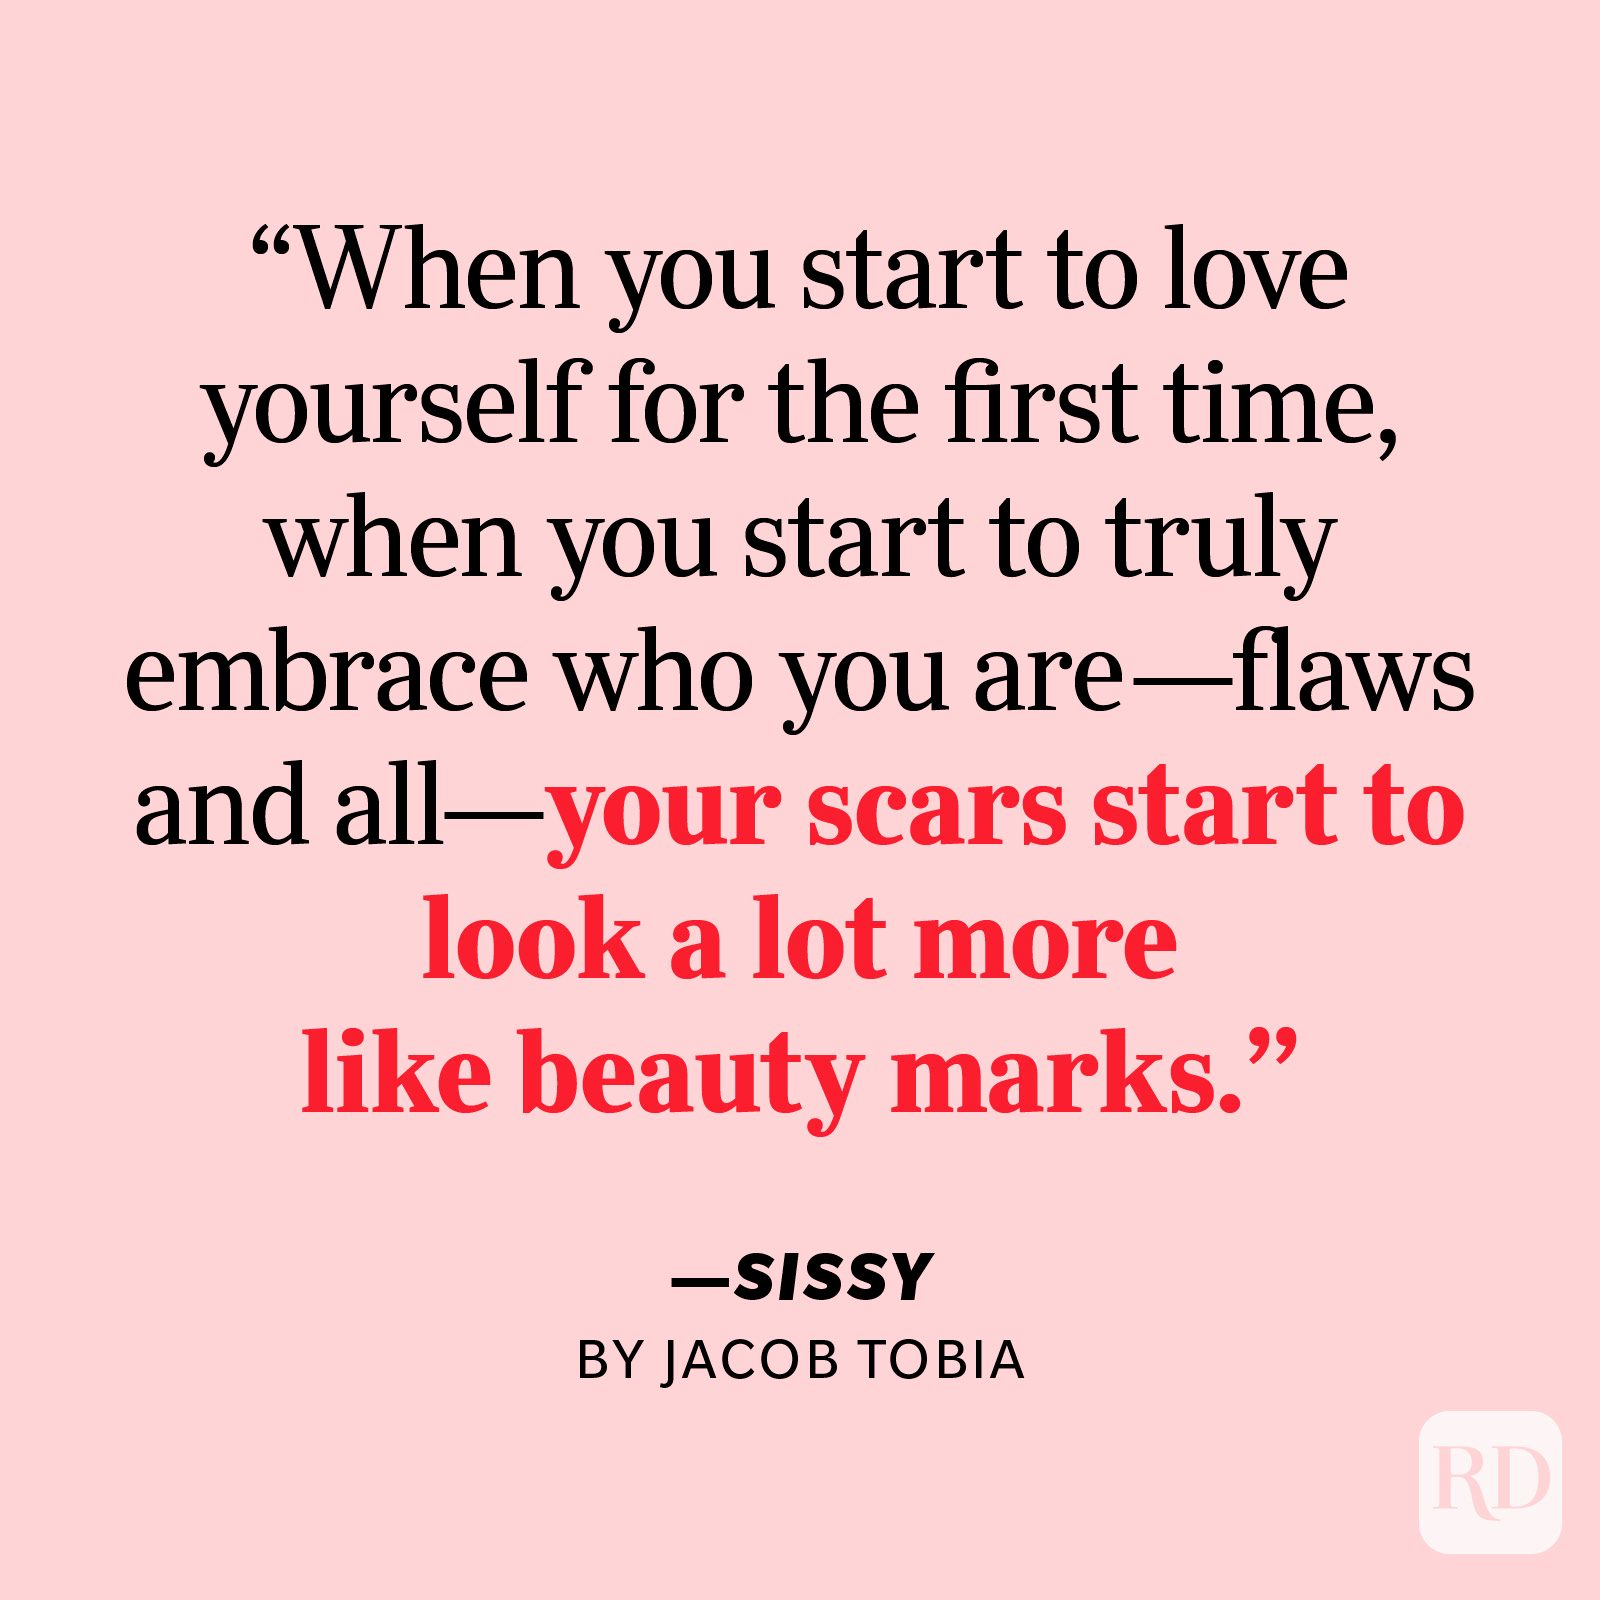 """Sissy by Jacob Tobia     """"Here's the remarkable thing about self-love: When you start to love yourself for the first time, when you start to truly embrace who you are—flaws and all—your scars start to look a lot more like beauty marks. The words that used to haunt you transform into badges of pride."""""""